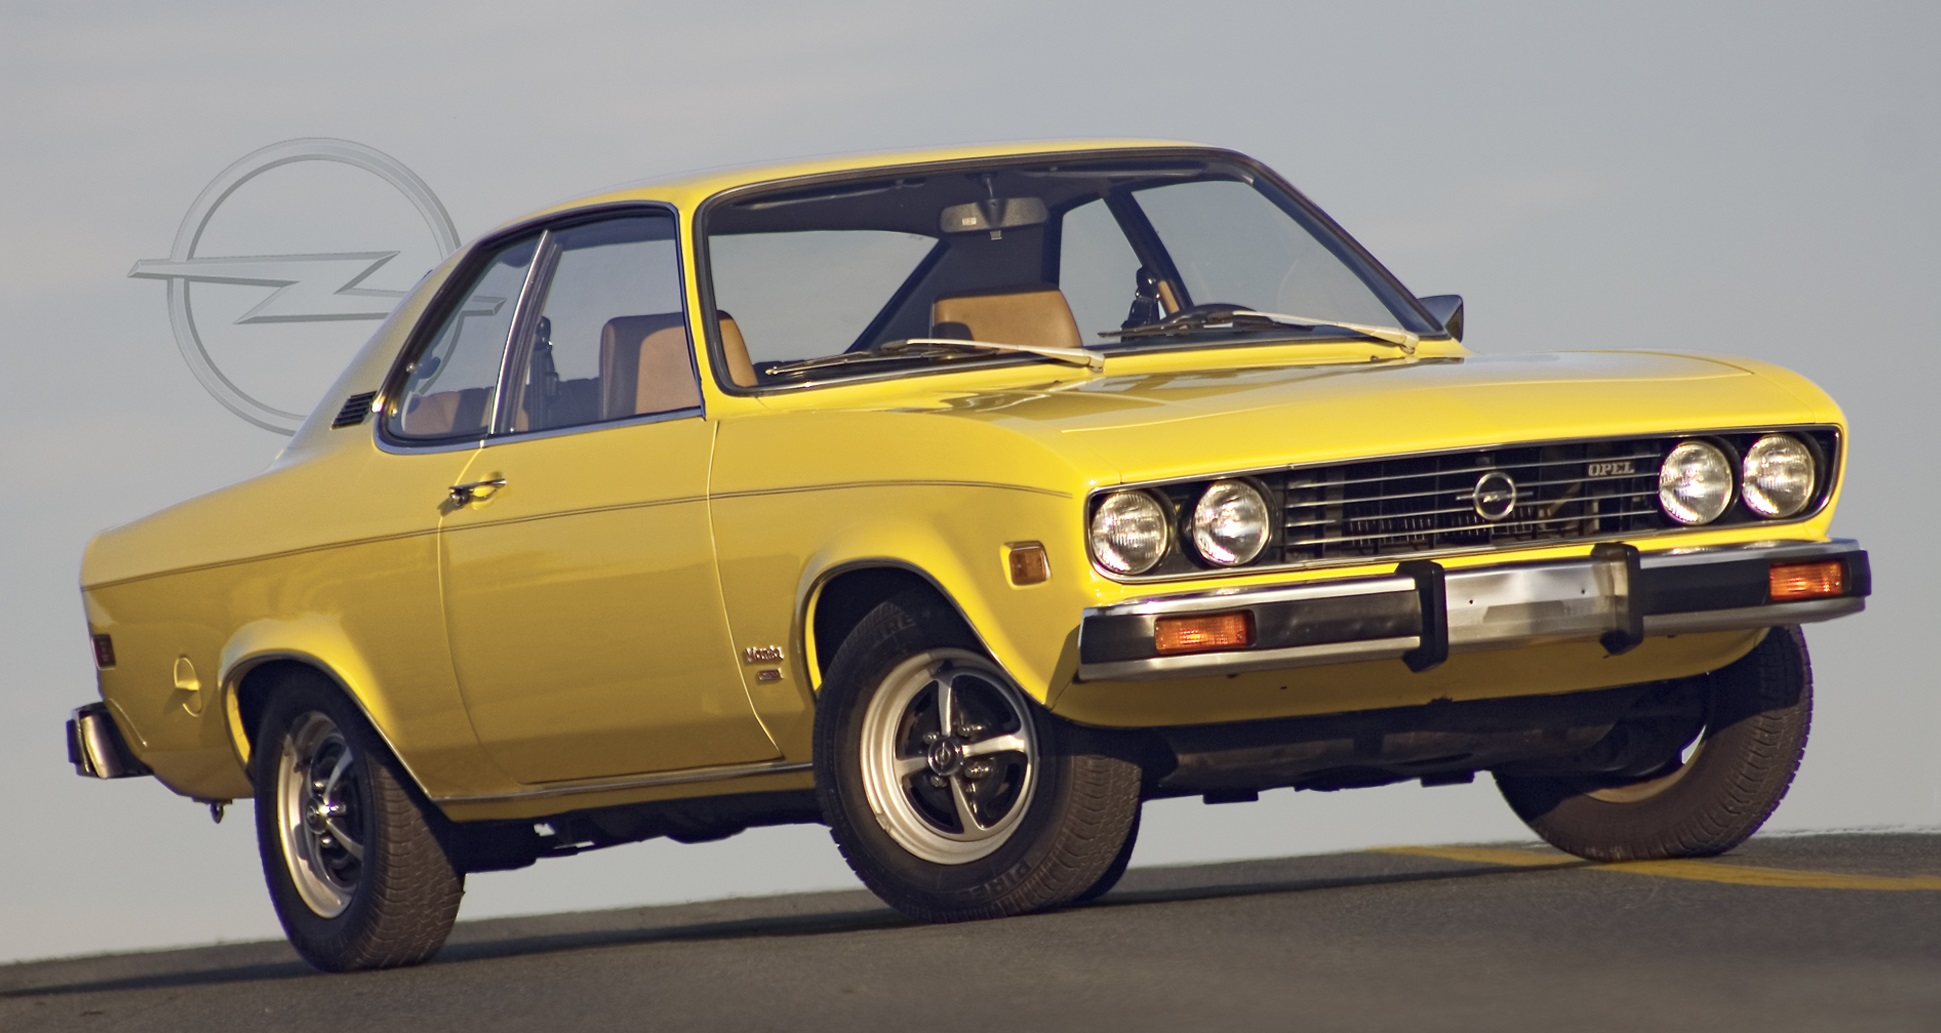 hight resolution of by mark j mccourt from the january 2019 issue of hemmings motor news share opel manta for sale